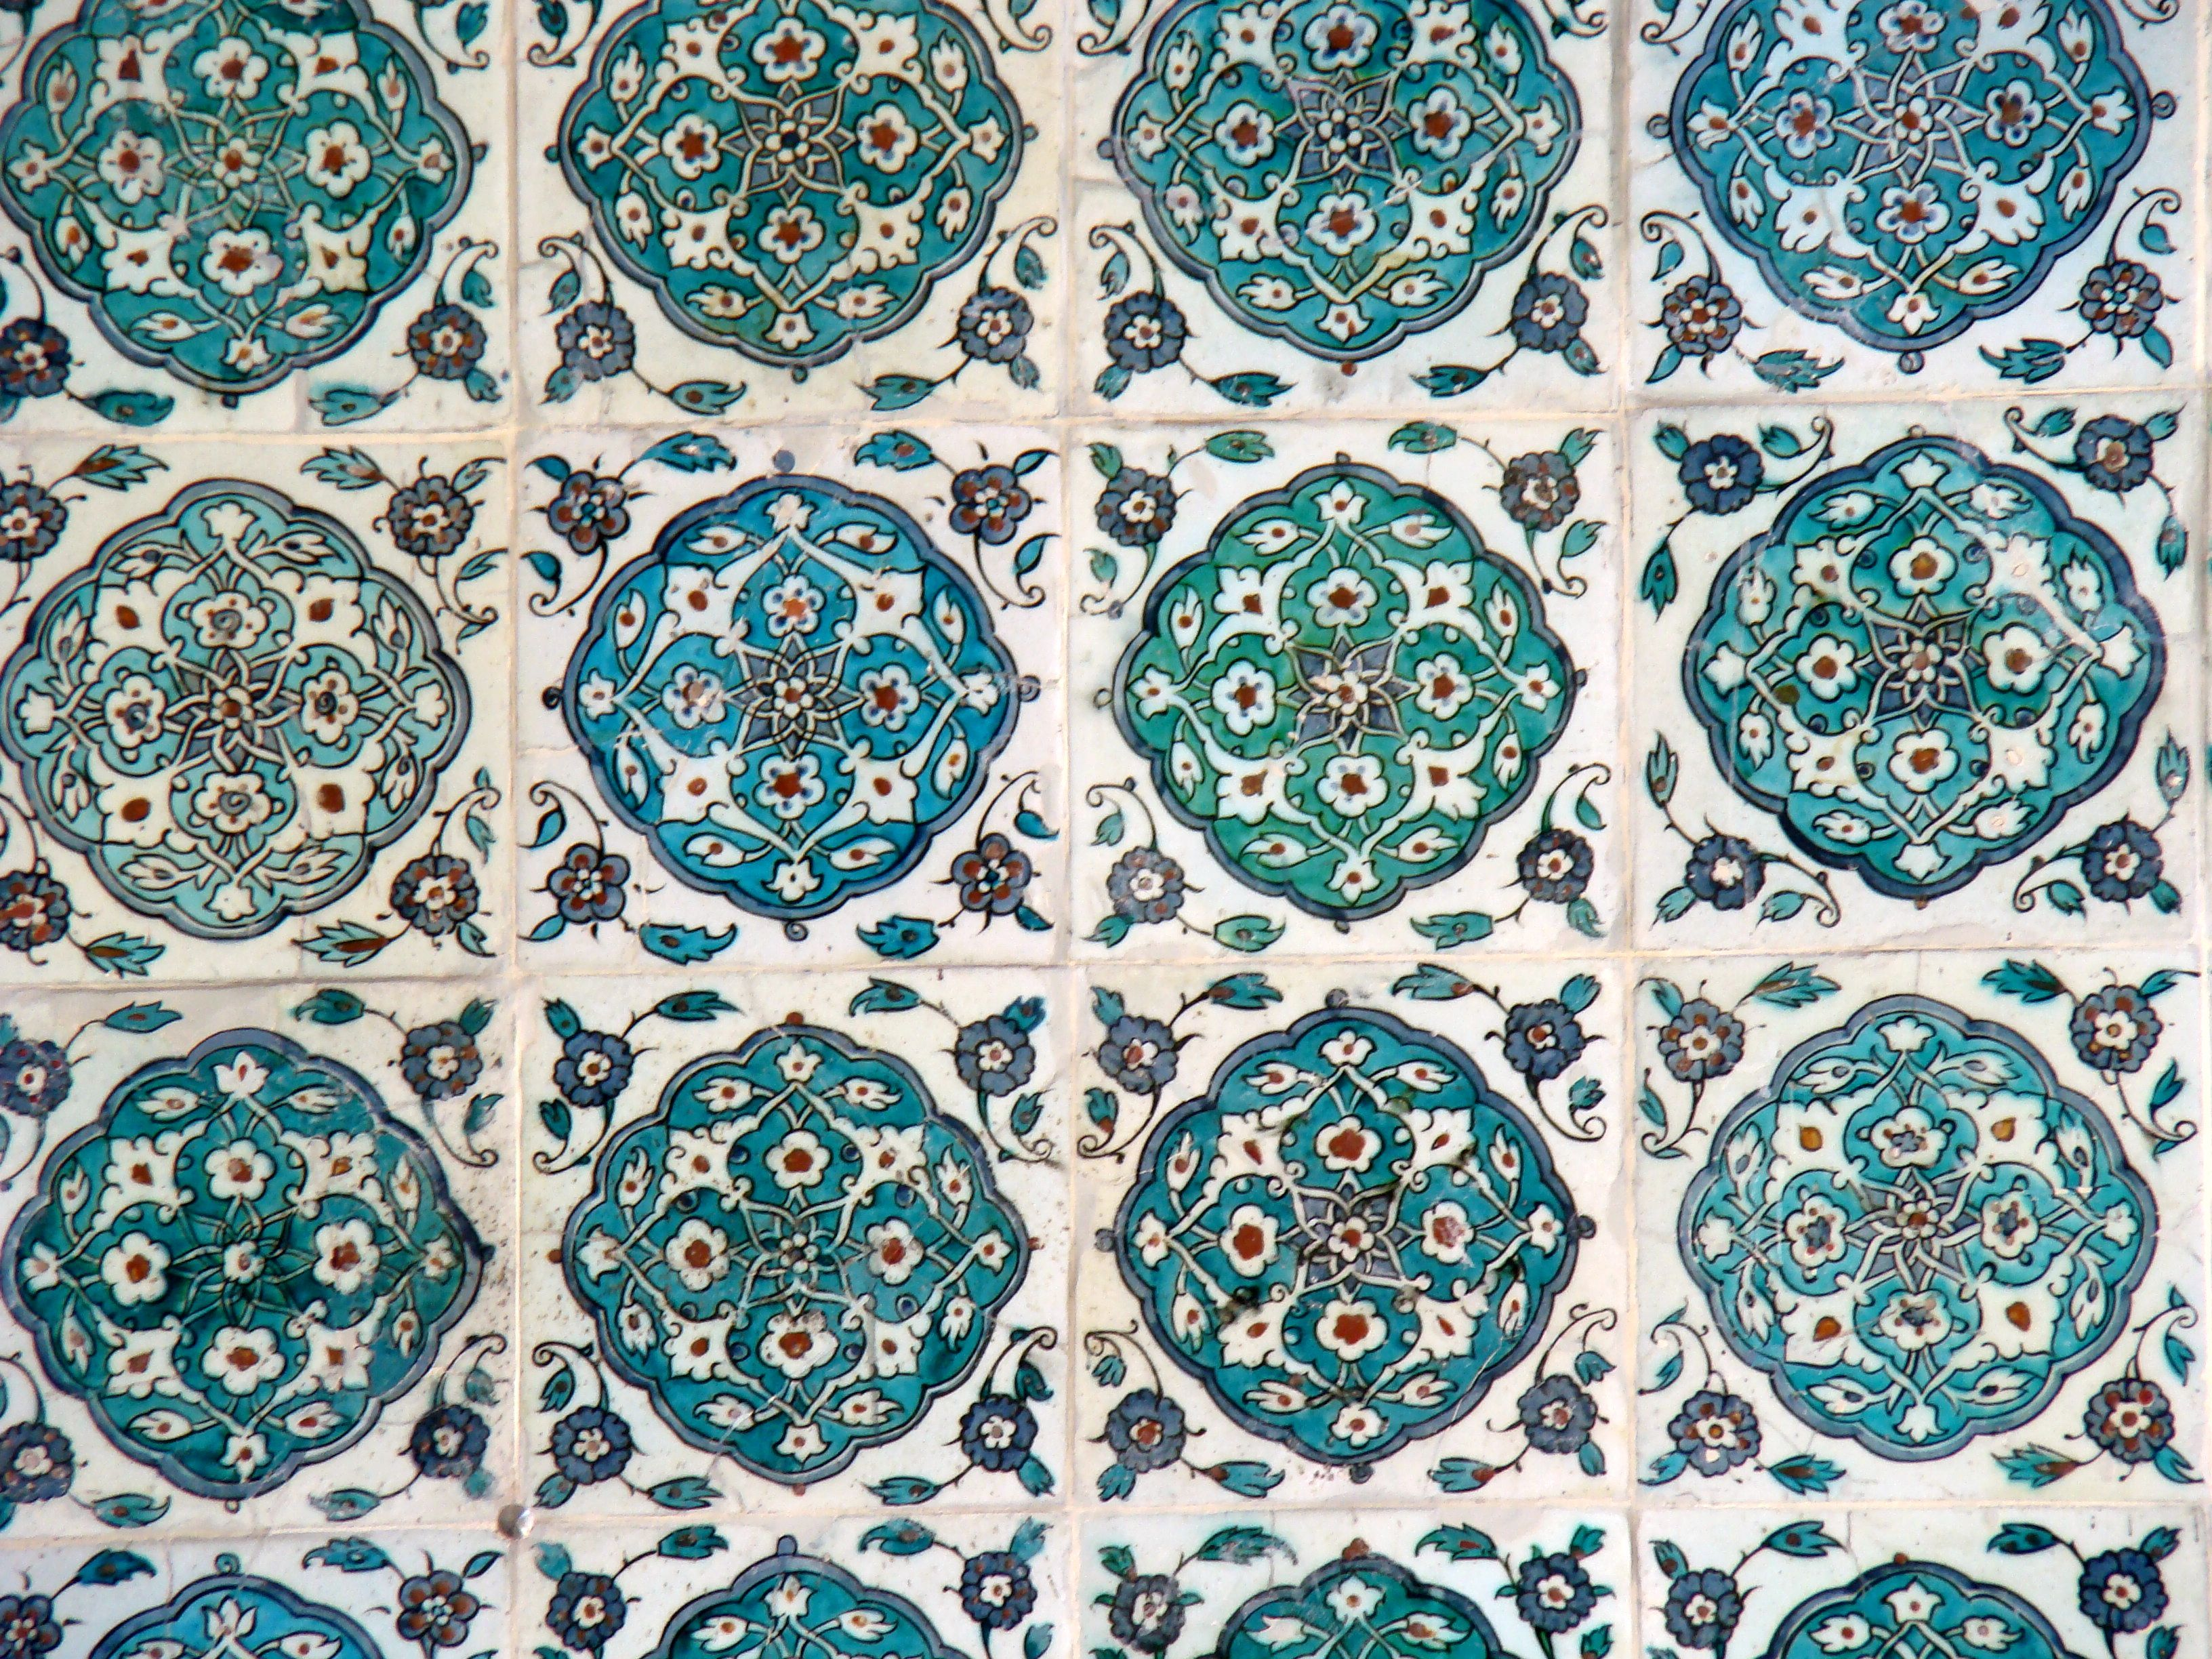 Tile Decorations Fascinating Blue Mosque Iznik Tiles  Blue Iznik Tile Decorations Topkapi Inspiration